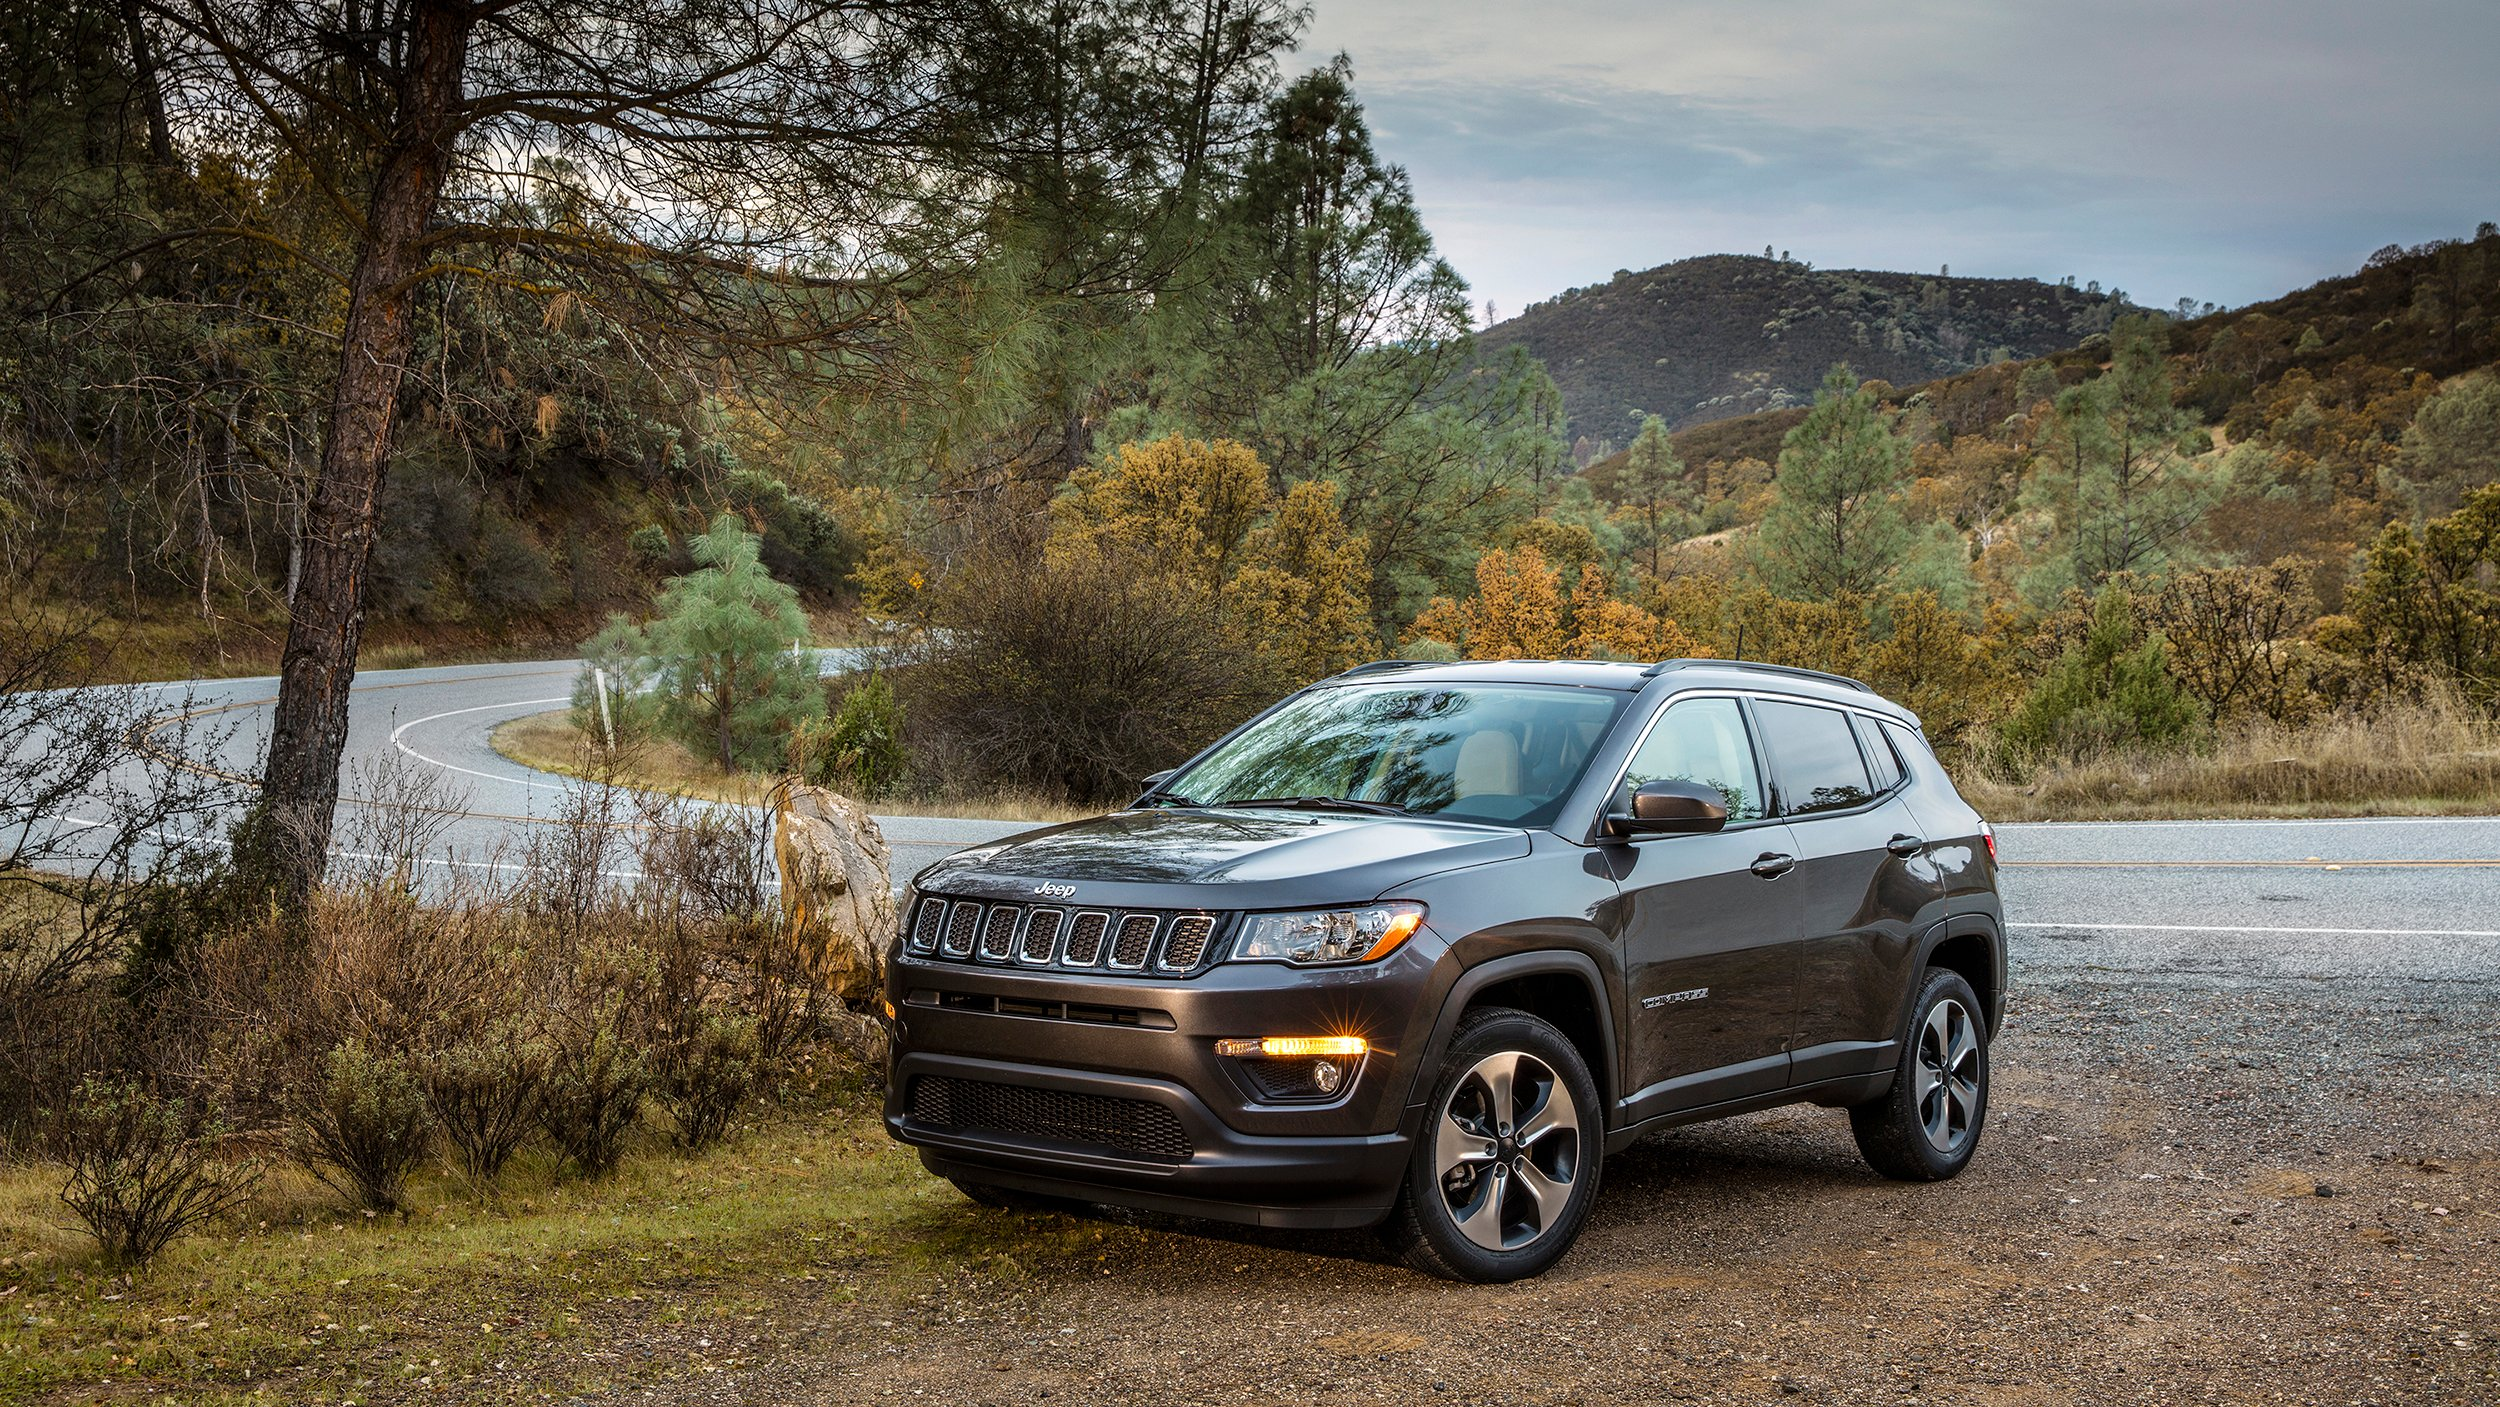 2017 Jeep Compass review | CarAdvice